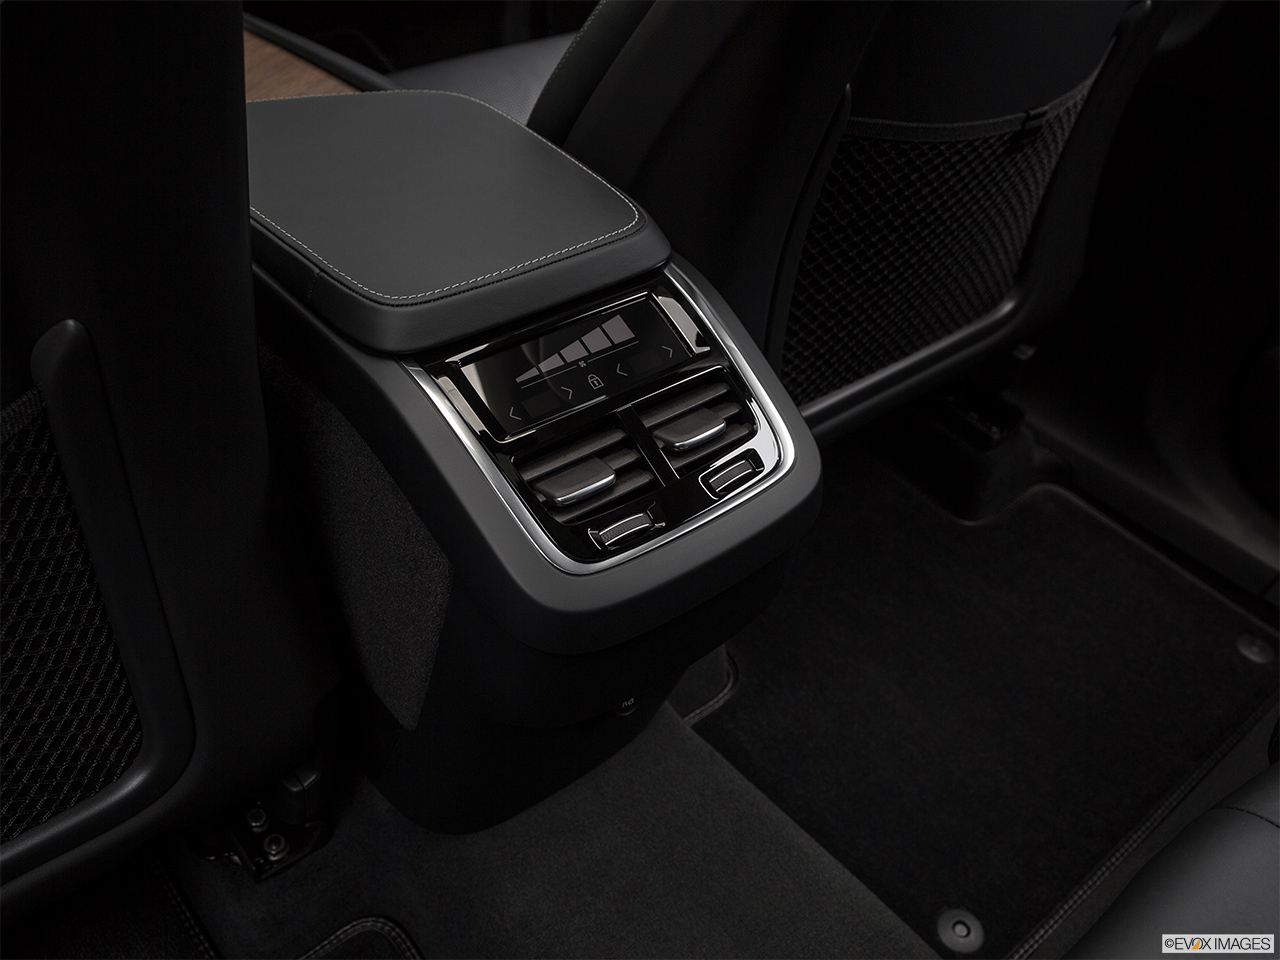 2019 Volvo XC90  T6 Inscription Rear A/C controls.